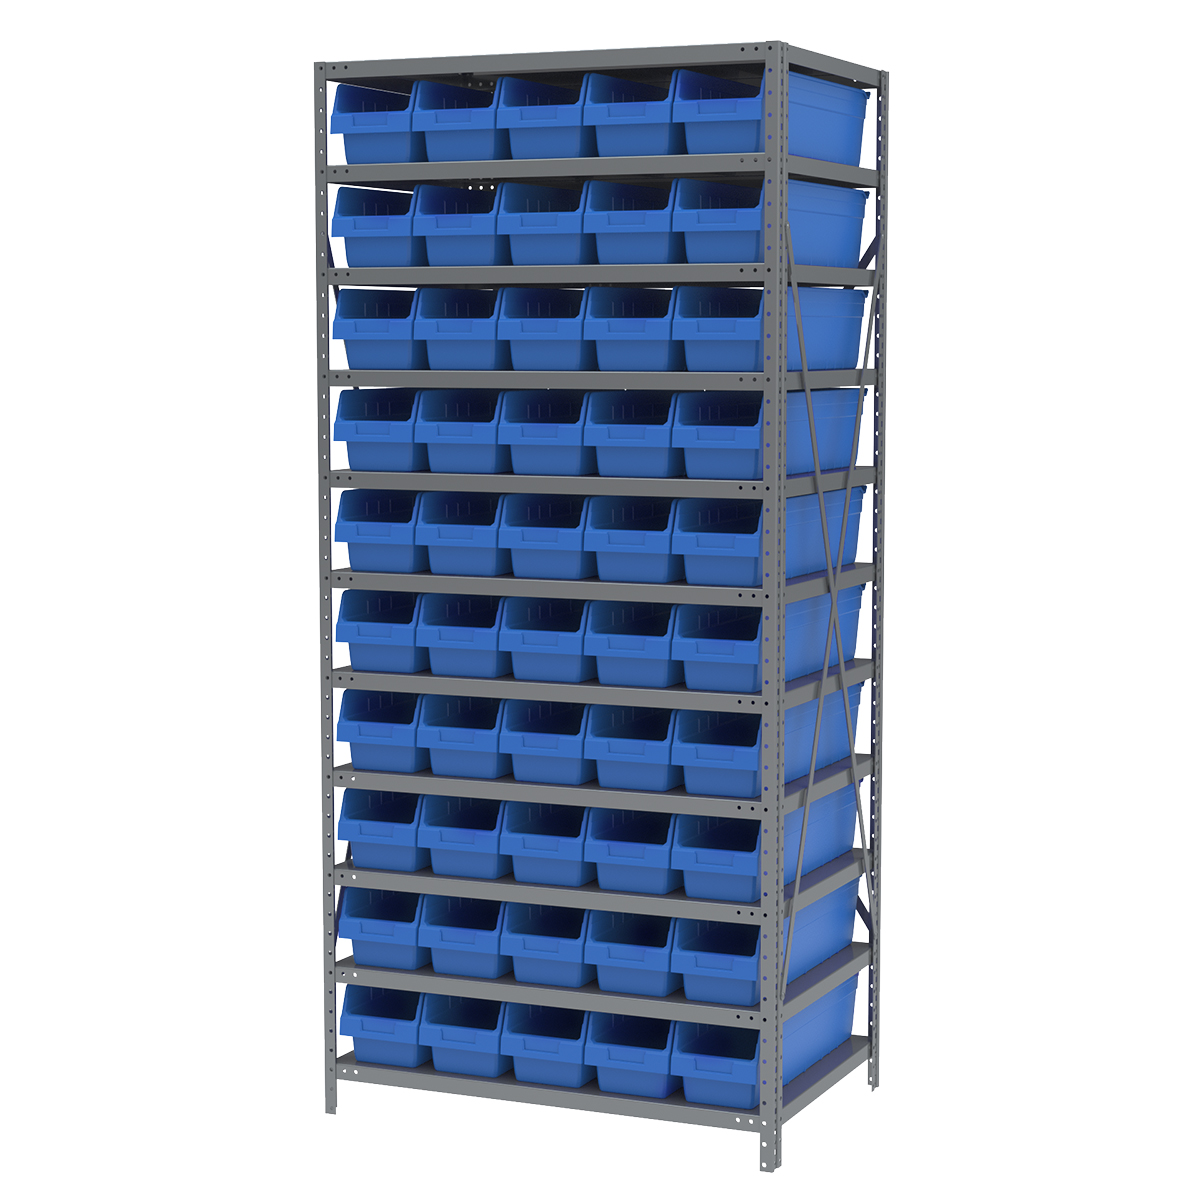 Steel Shelving Kit, 24x36x79, 50 Bins, Gray/Blue.  This item sold in carton quantities of 1.